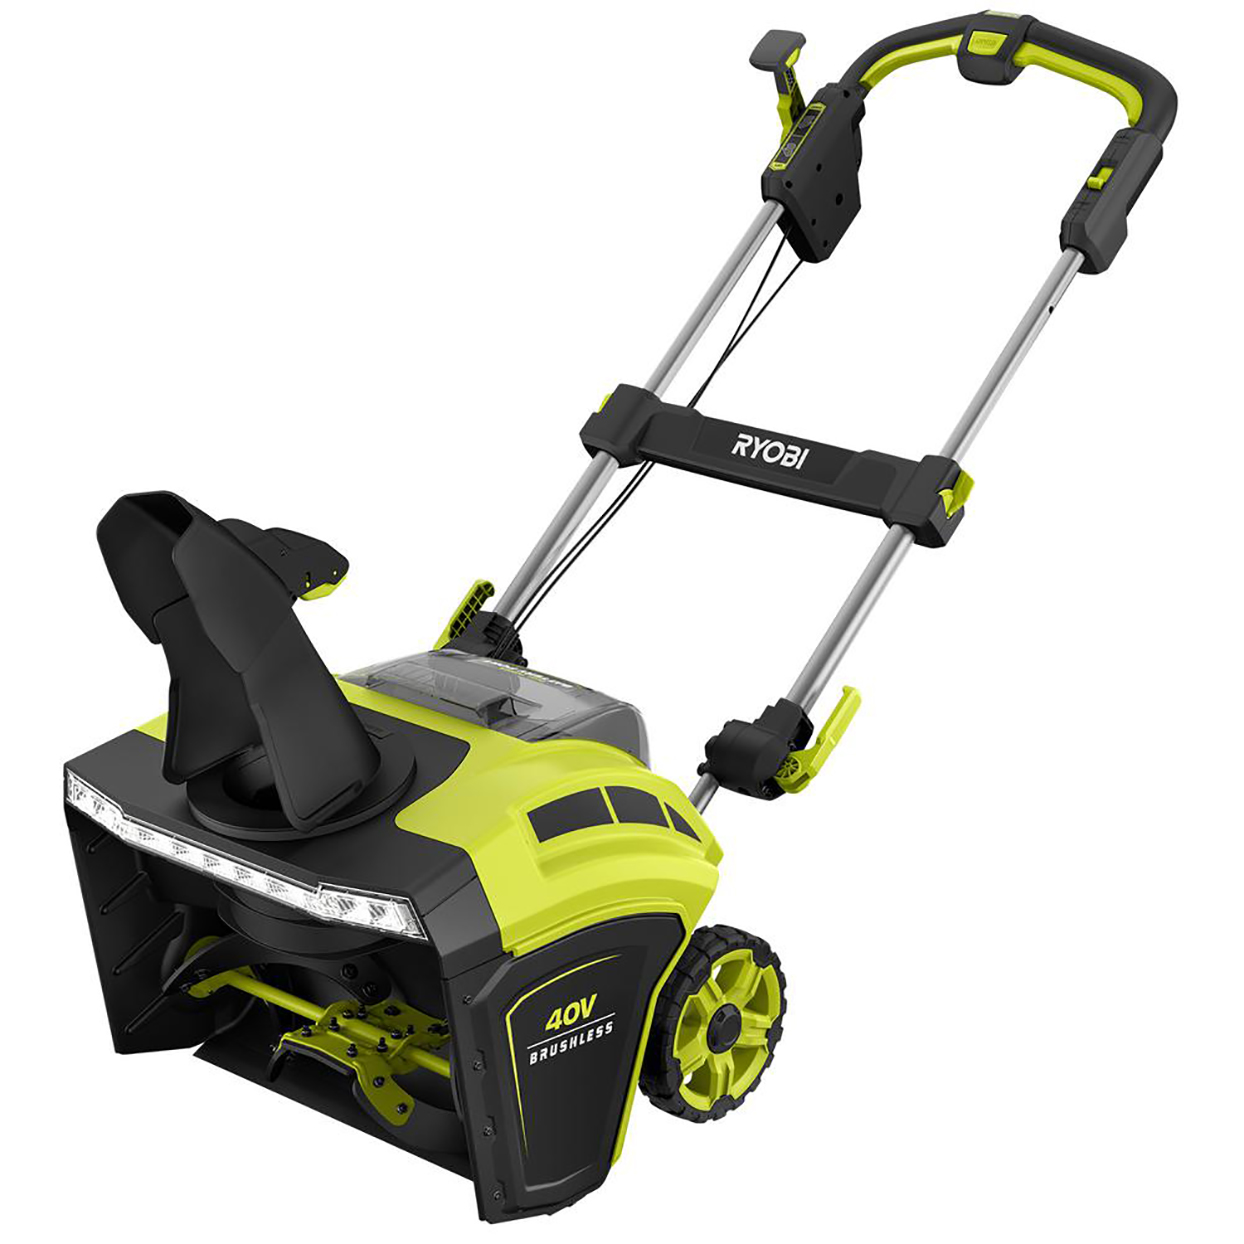 lime green and black snowblower